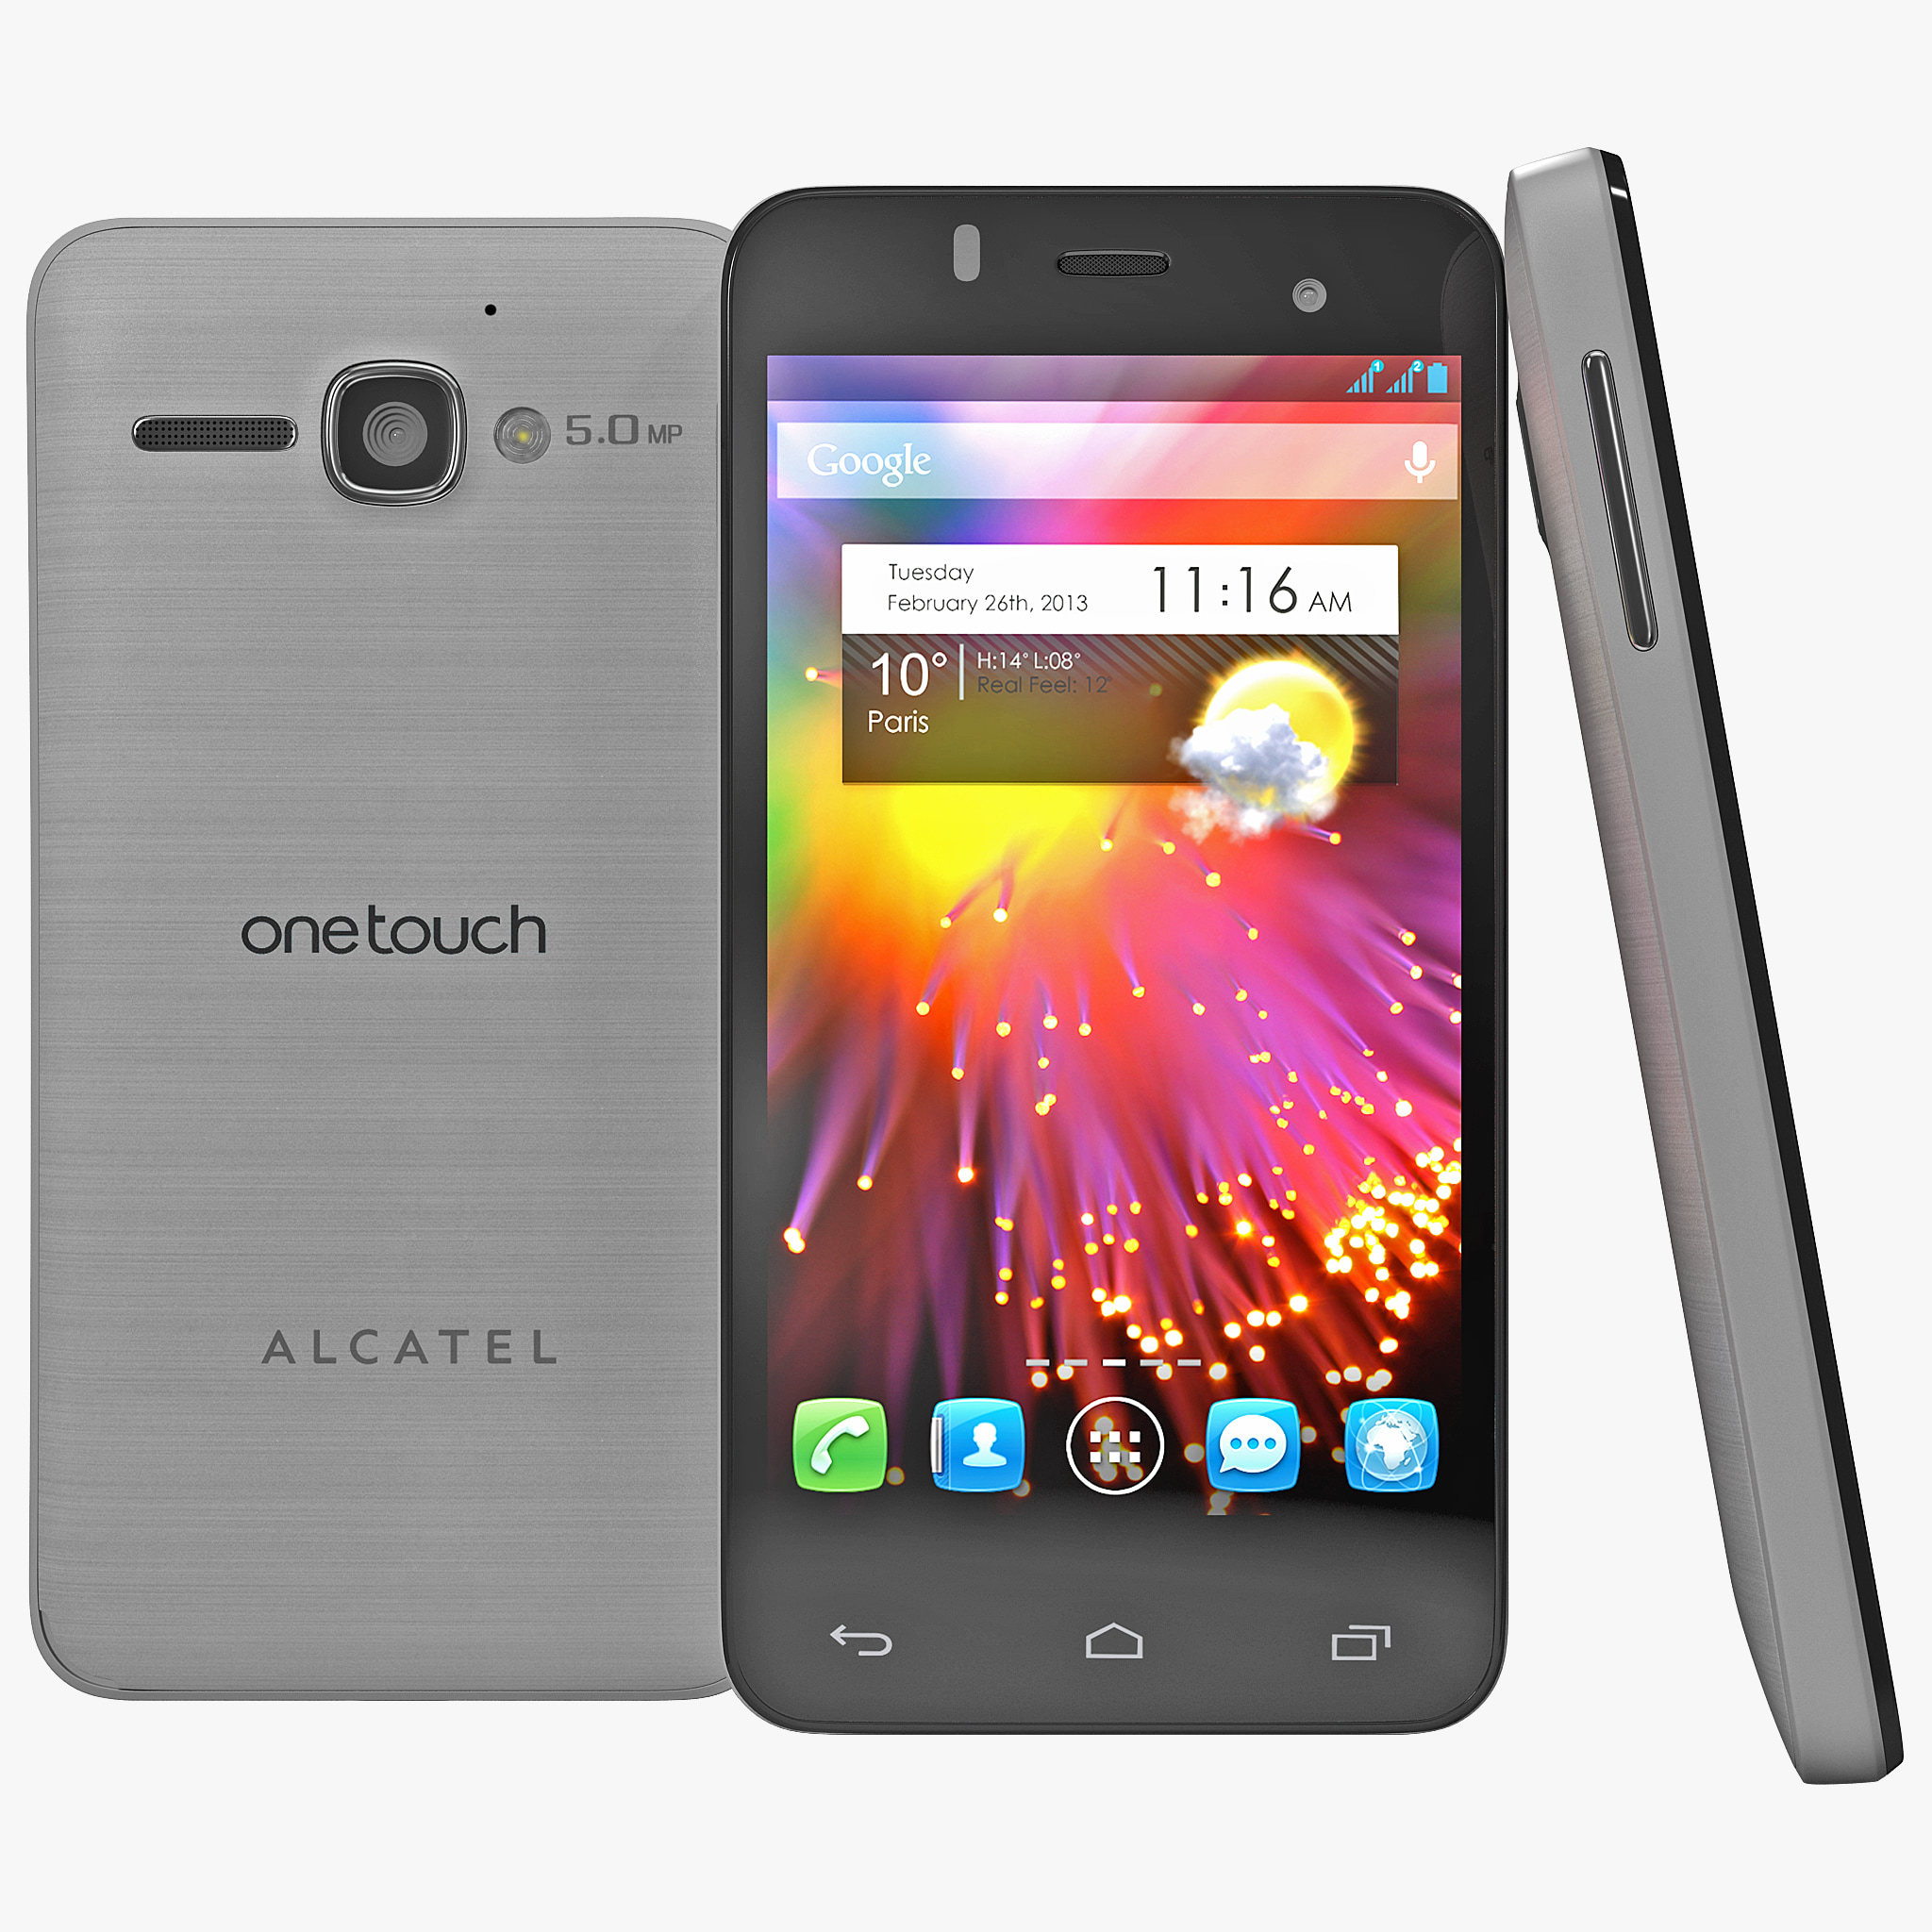 Alcatel One Touch Star_1.jpg